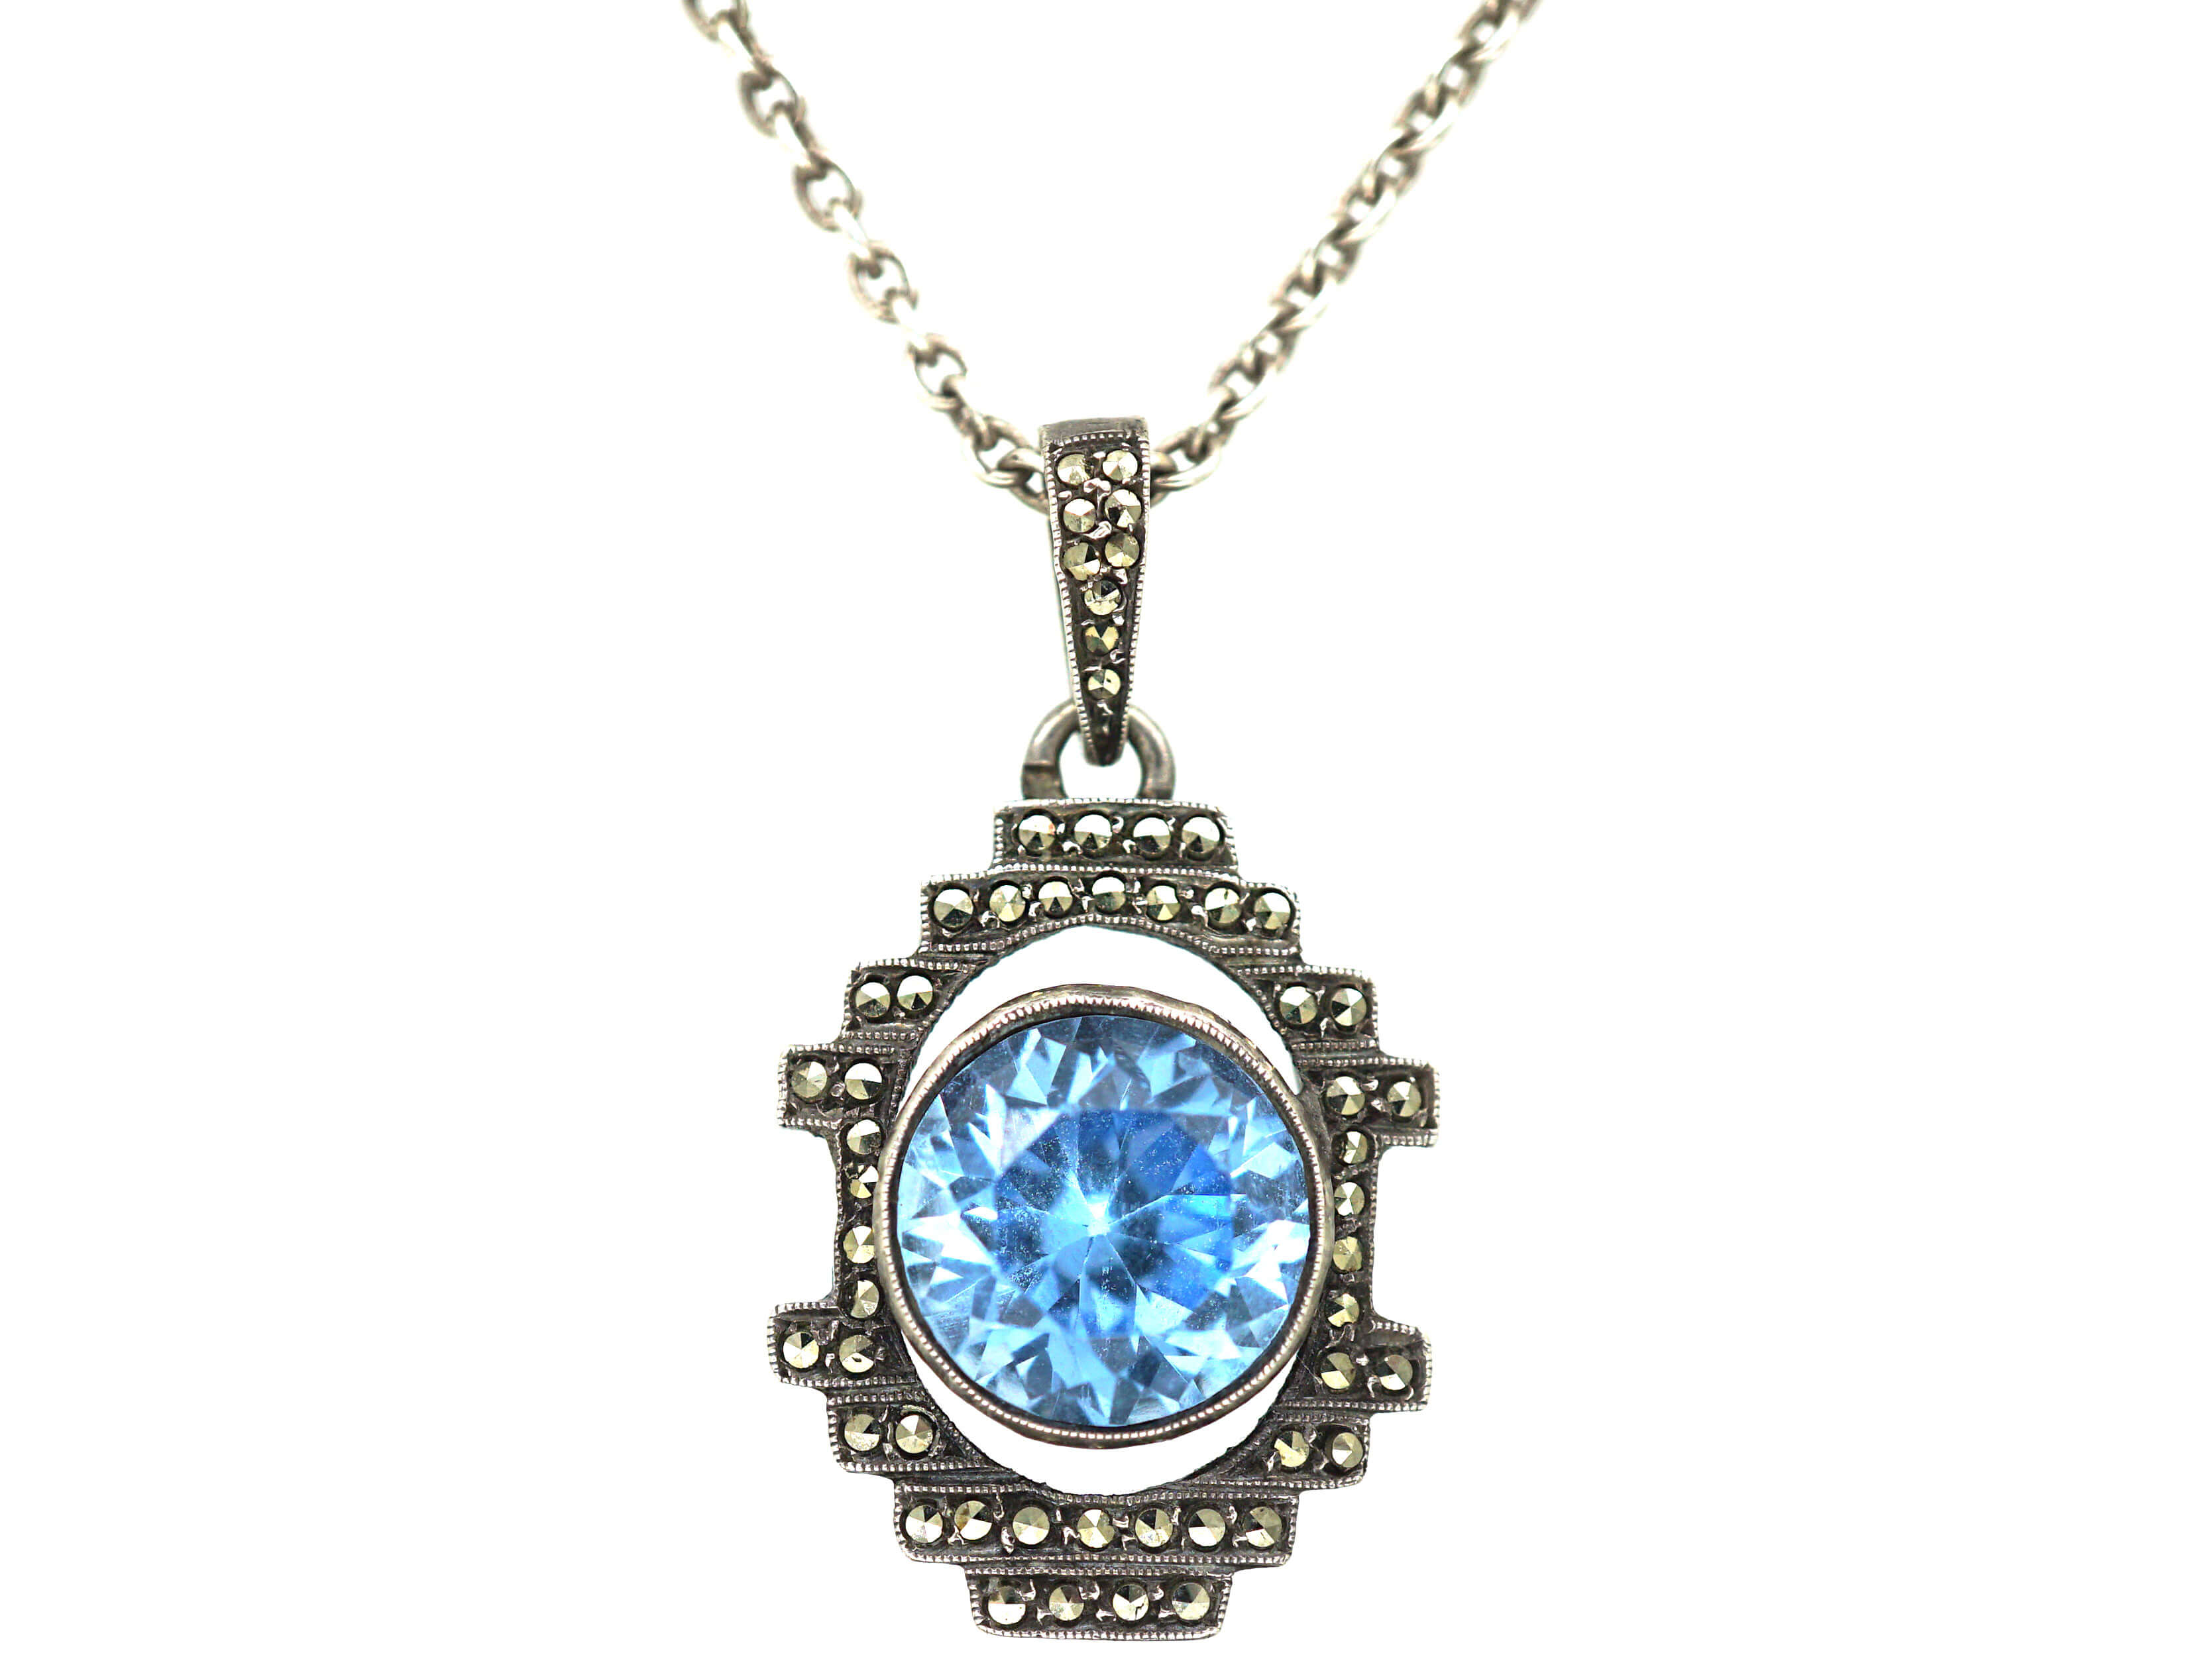 Art Deco Silver, Marcasite & Synthetic Spinel Pendant on Silver Chain